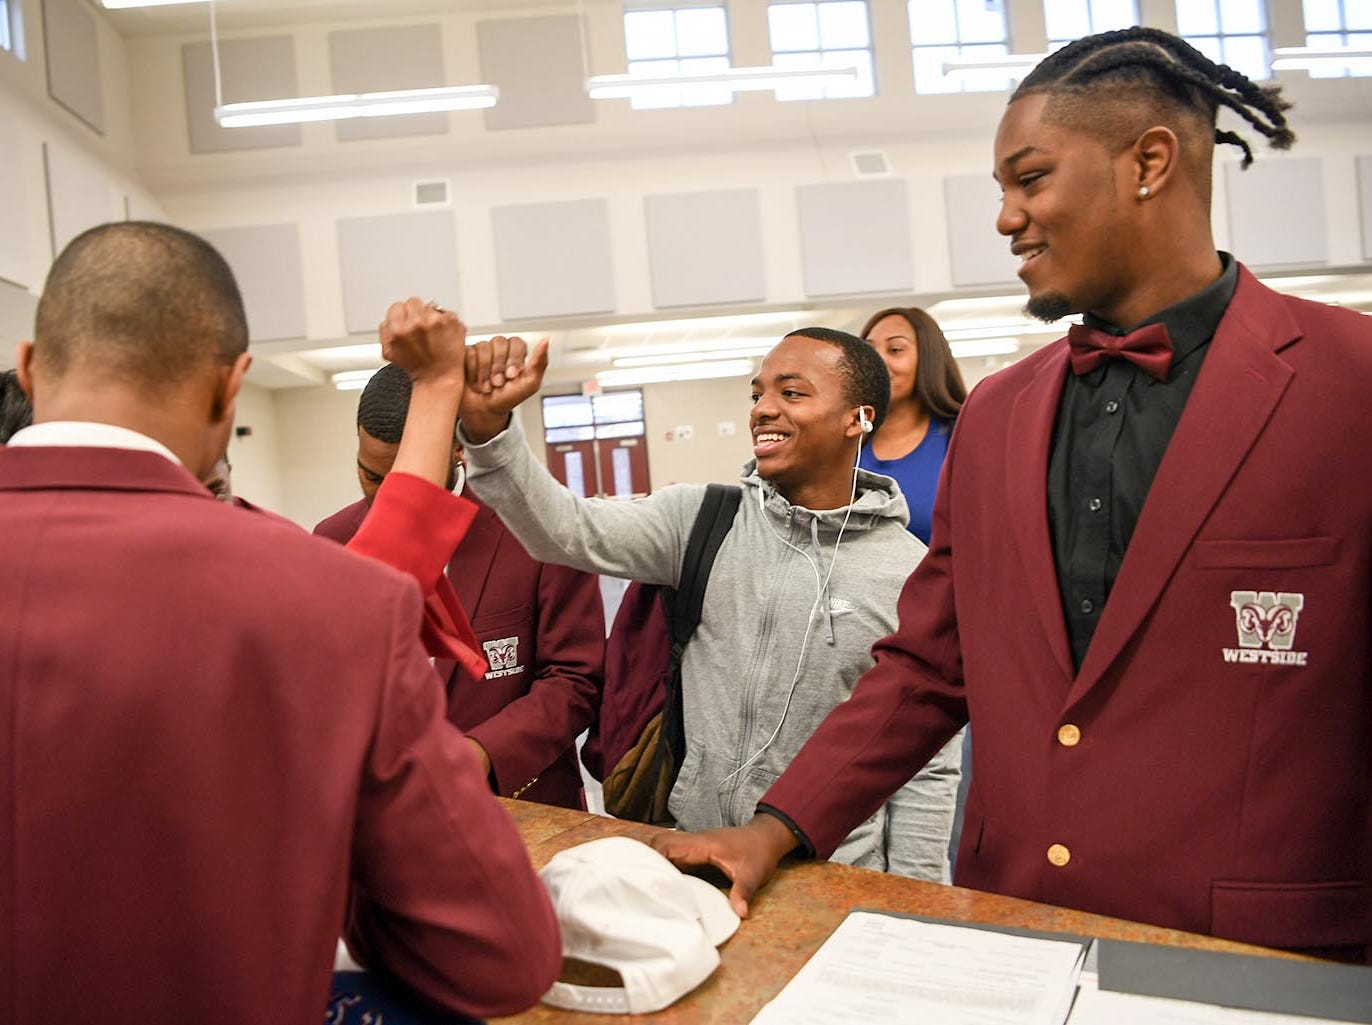 Traye Carson, middle, congratulates former football teammates, including Florida Intstitute of Technology signee Ty Ty Danzy, right, one of eight athletes from Westside High School football to sign a National Letter of Intent at Westside High School in Anderson Wednesday. Newberry College signees Zach Howard, Devante Gambrell, Wingate University signees Nasir Evans and K.D. Fant-Miles, Presbyterian College signees Paul Johnson and Tim Johnson, and Florida Intstitute of Technology signee Ty Ty Danzy.